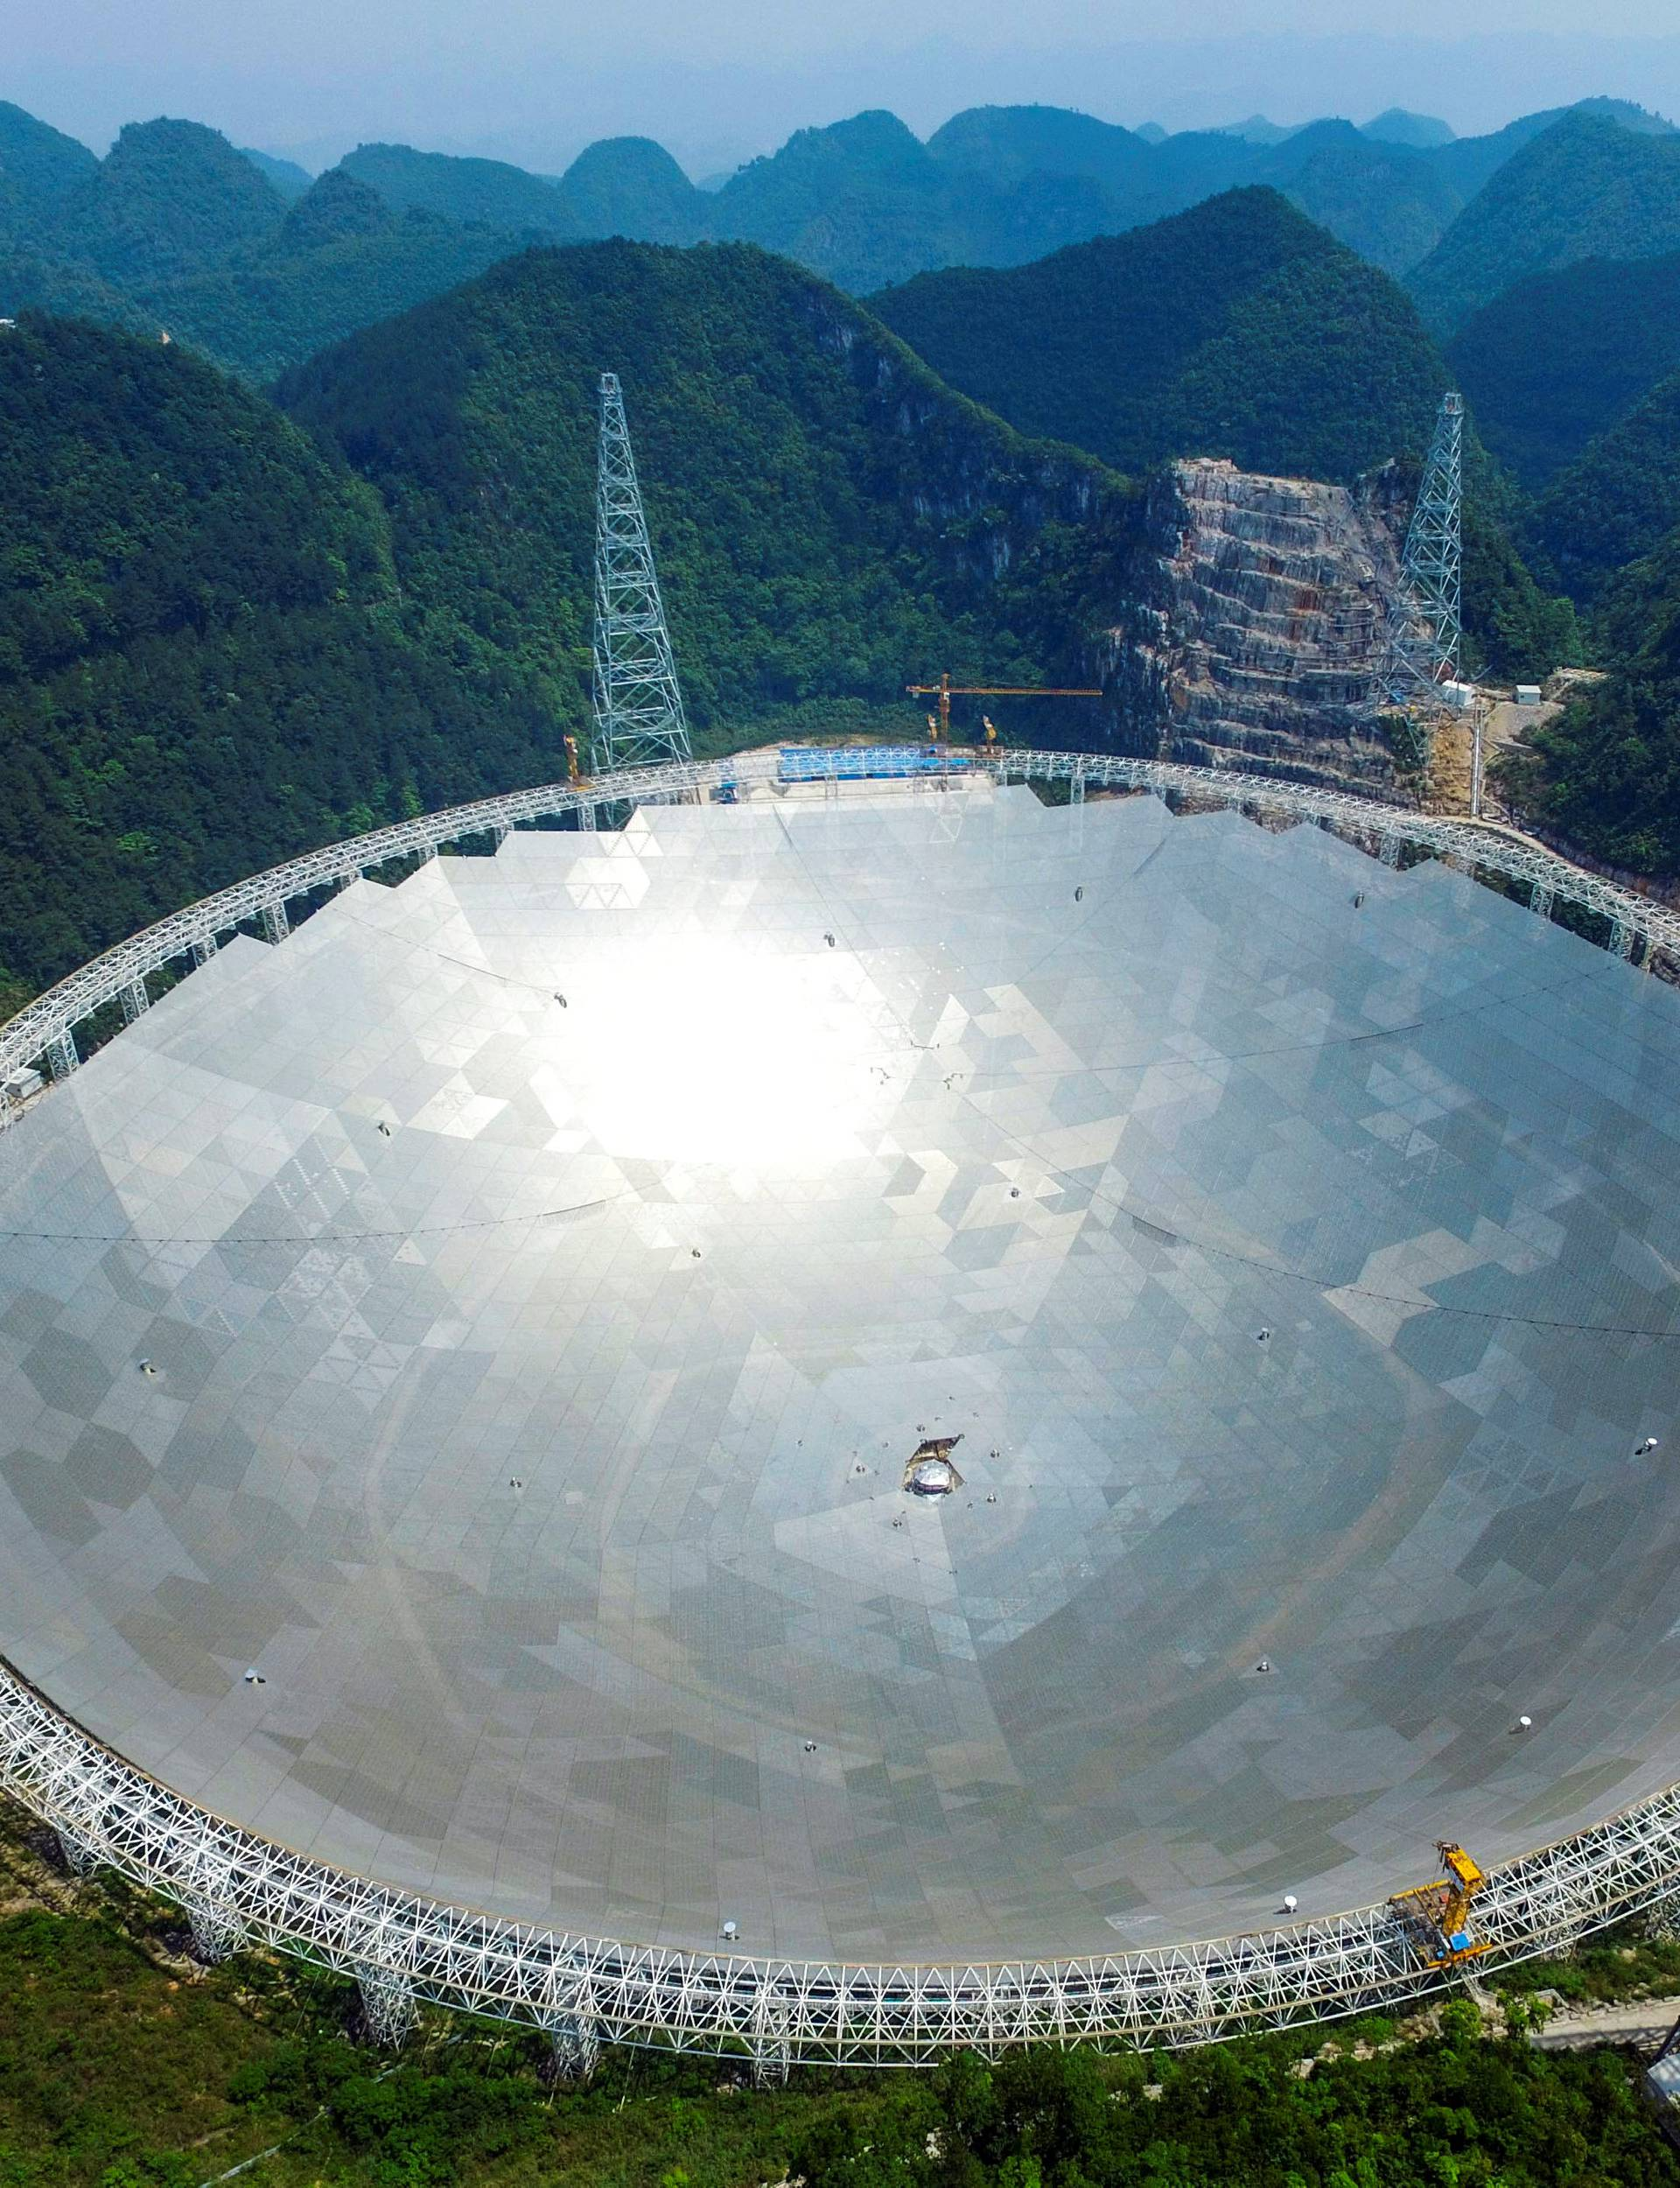 A 500-metre aperture spherical telescopeis seen at the final stage of construction, among the mountains in Pingtang county